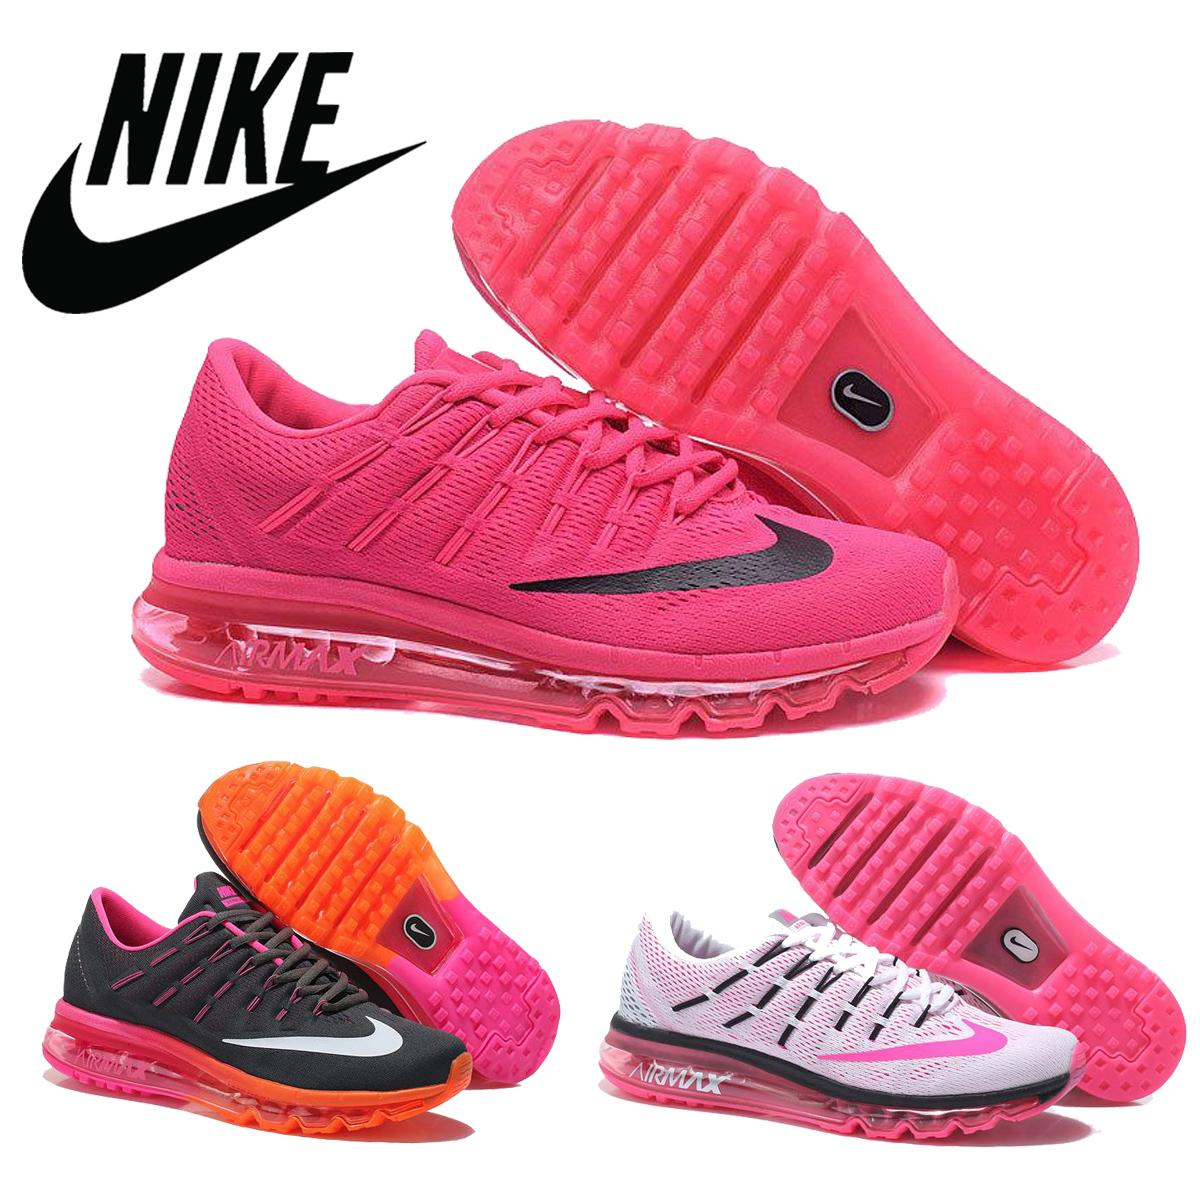 Nike Shoes For Me